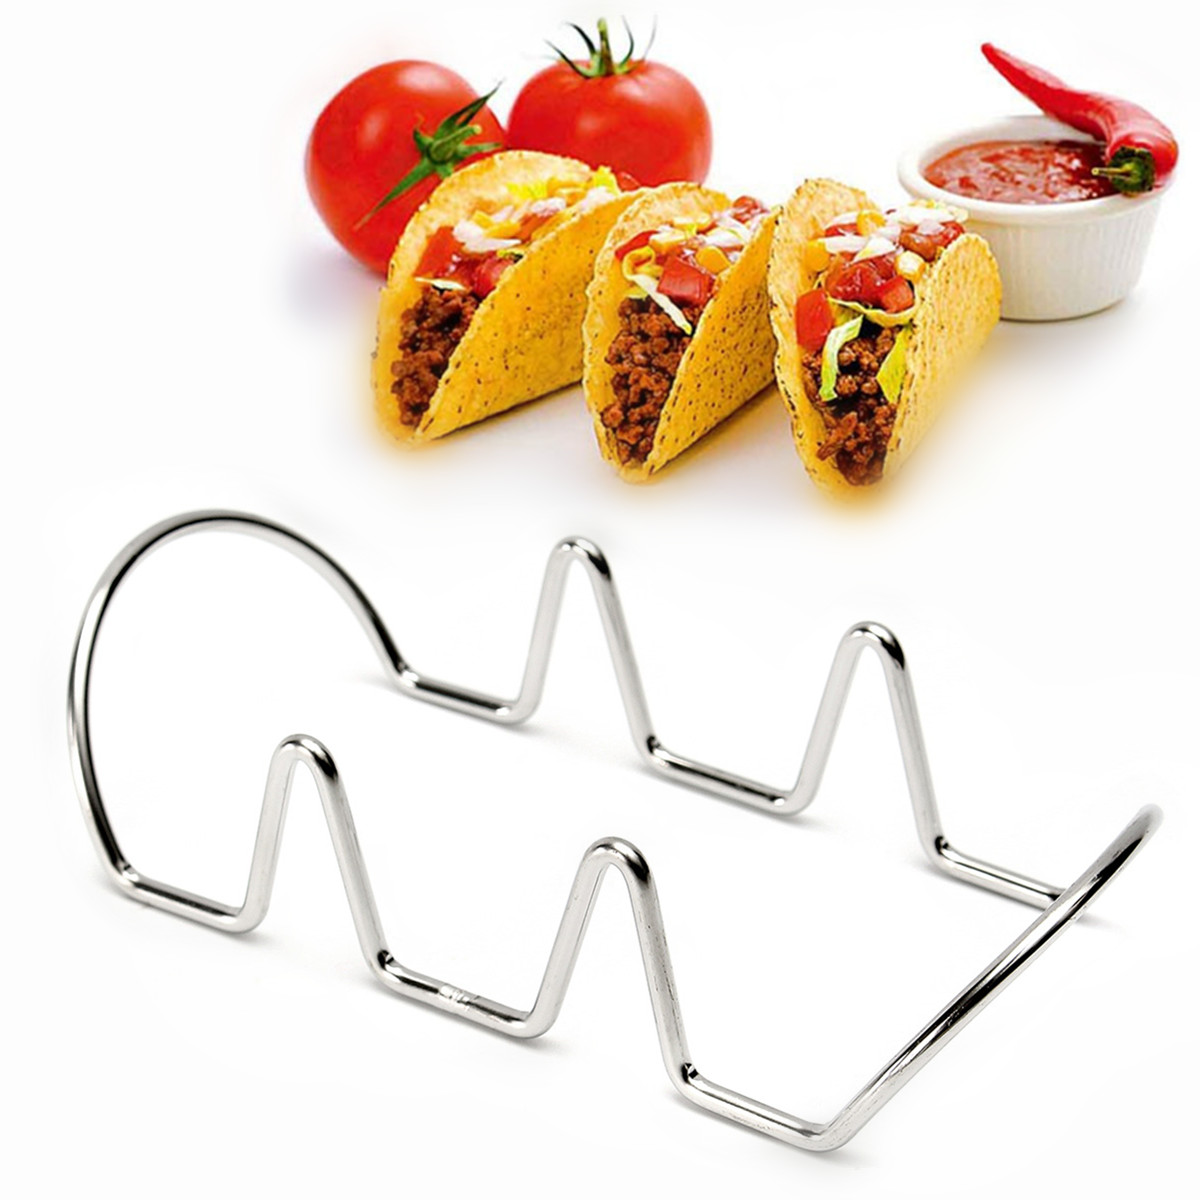 Silver Mexican Taco Rack Holder Stainless Steel Food Rack Display ...